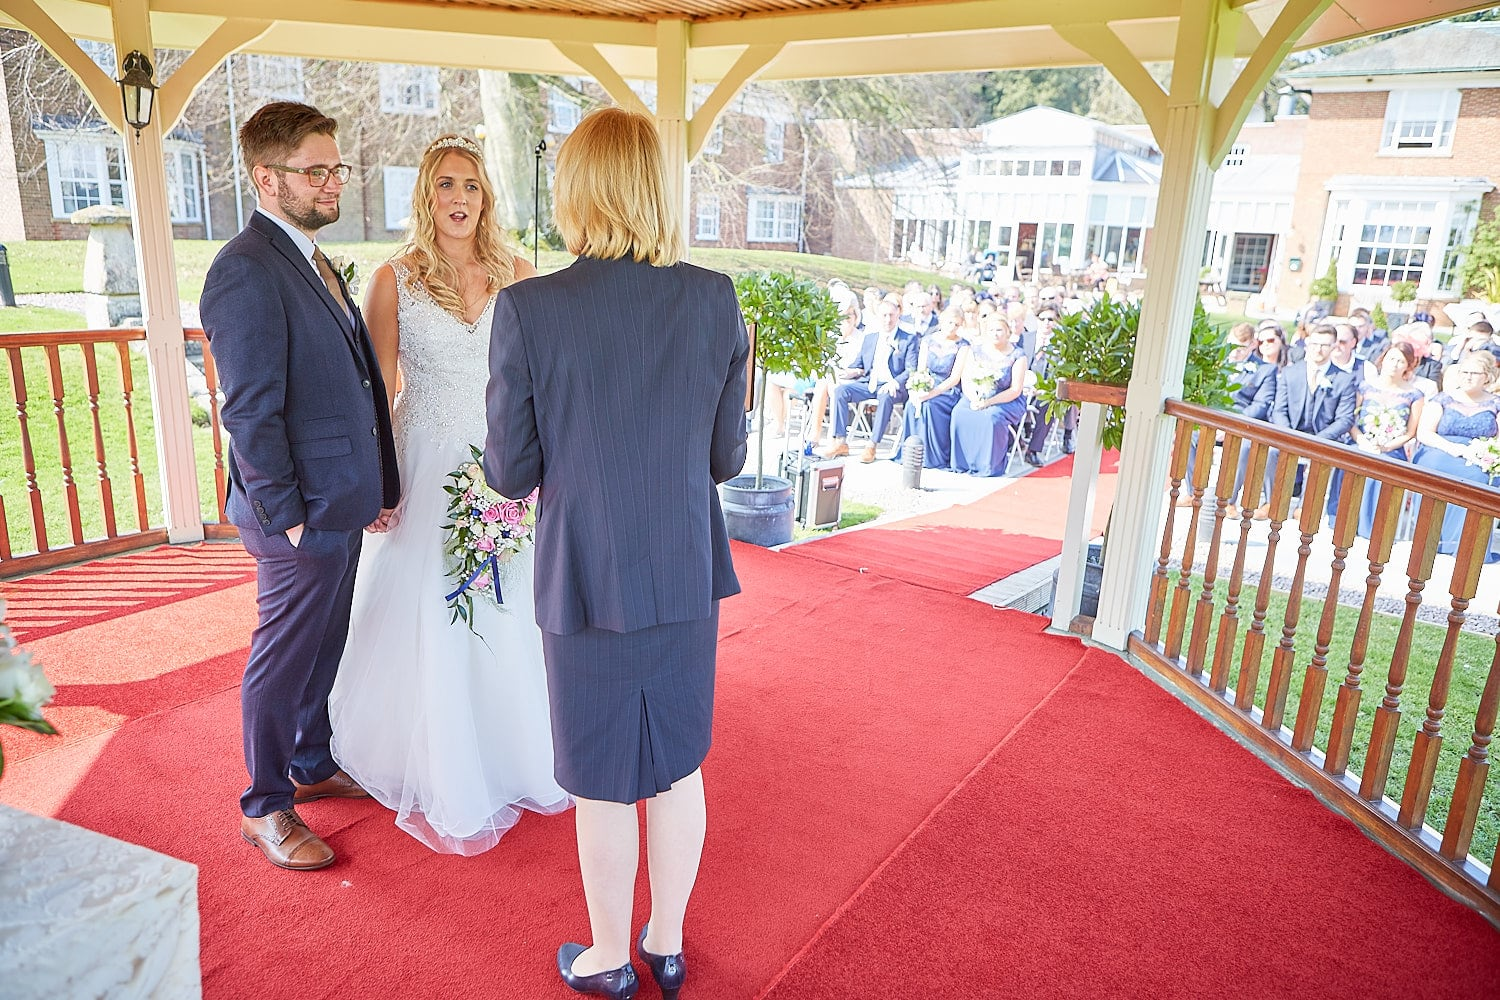 A couple exchanging their vows outdoors at Kenwick Park, Louth